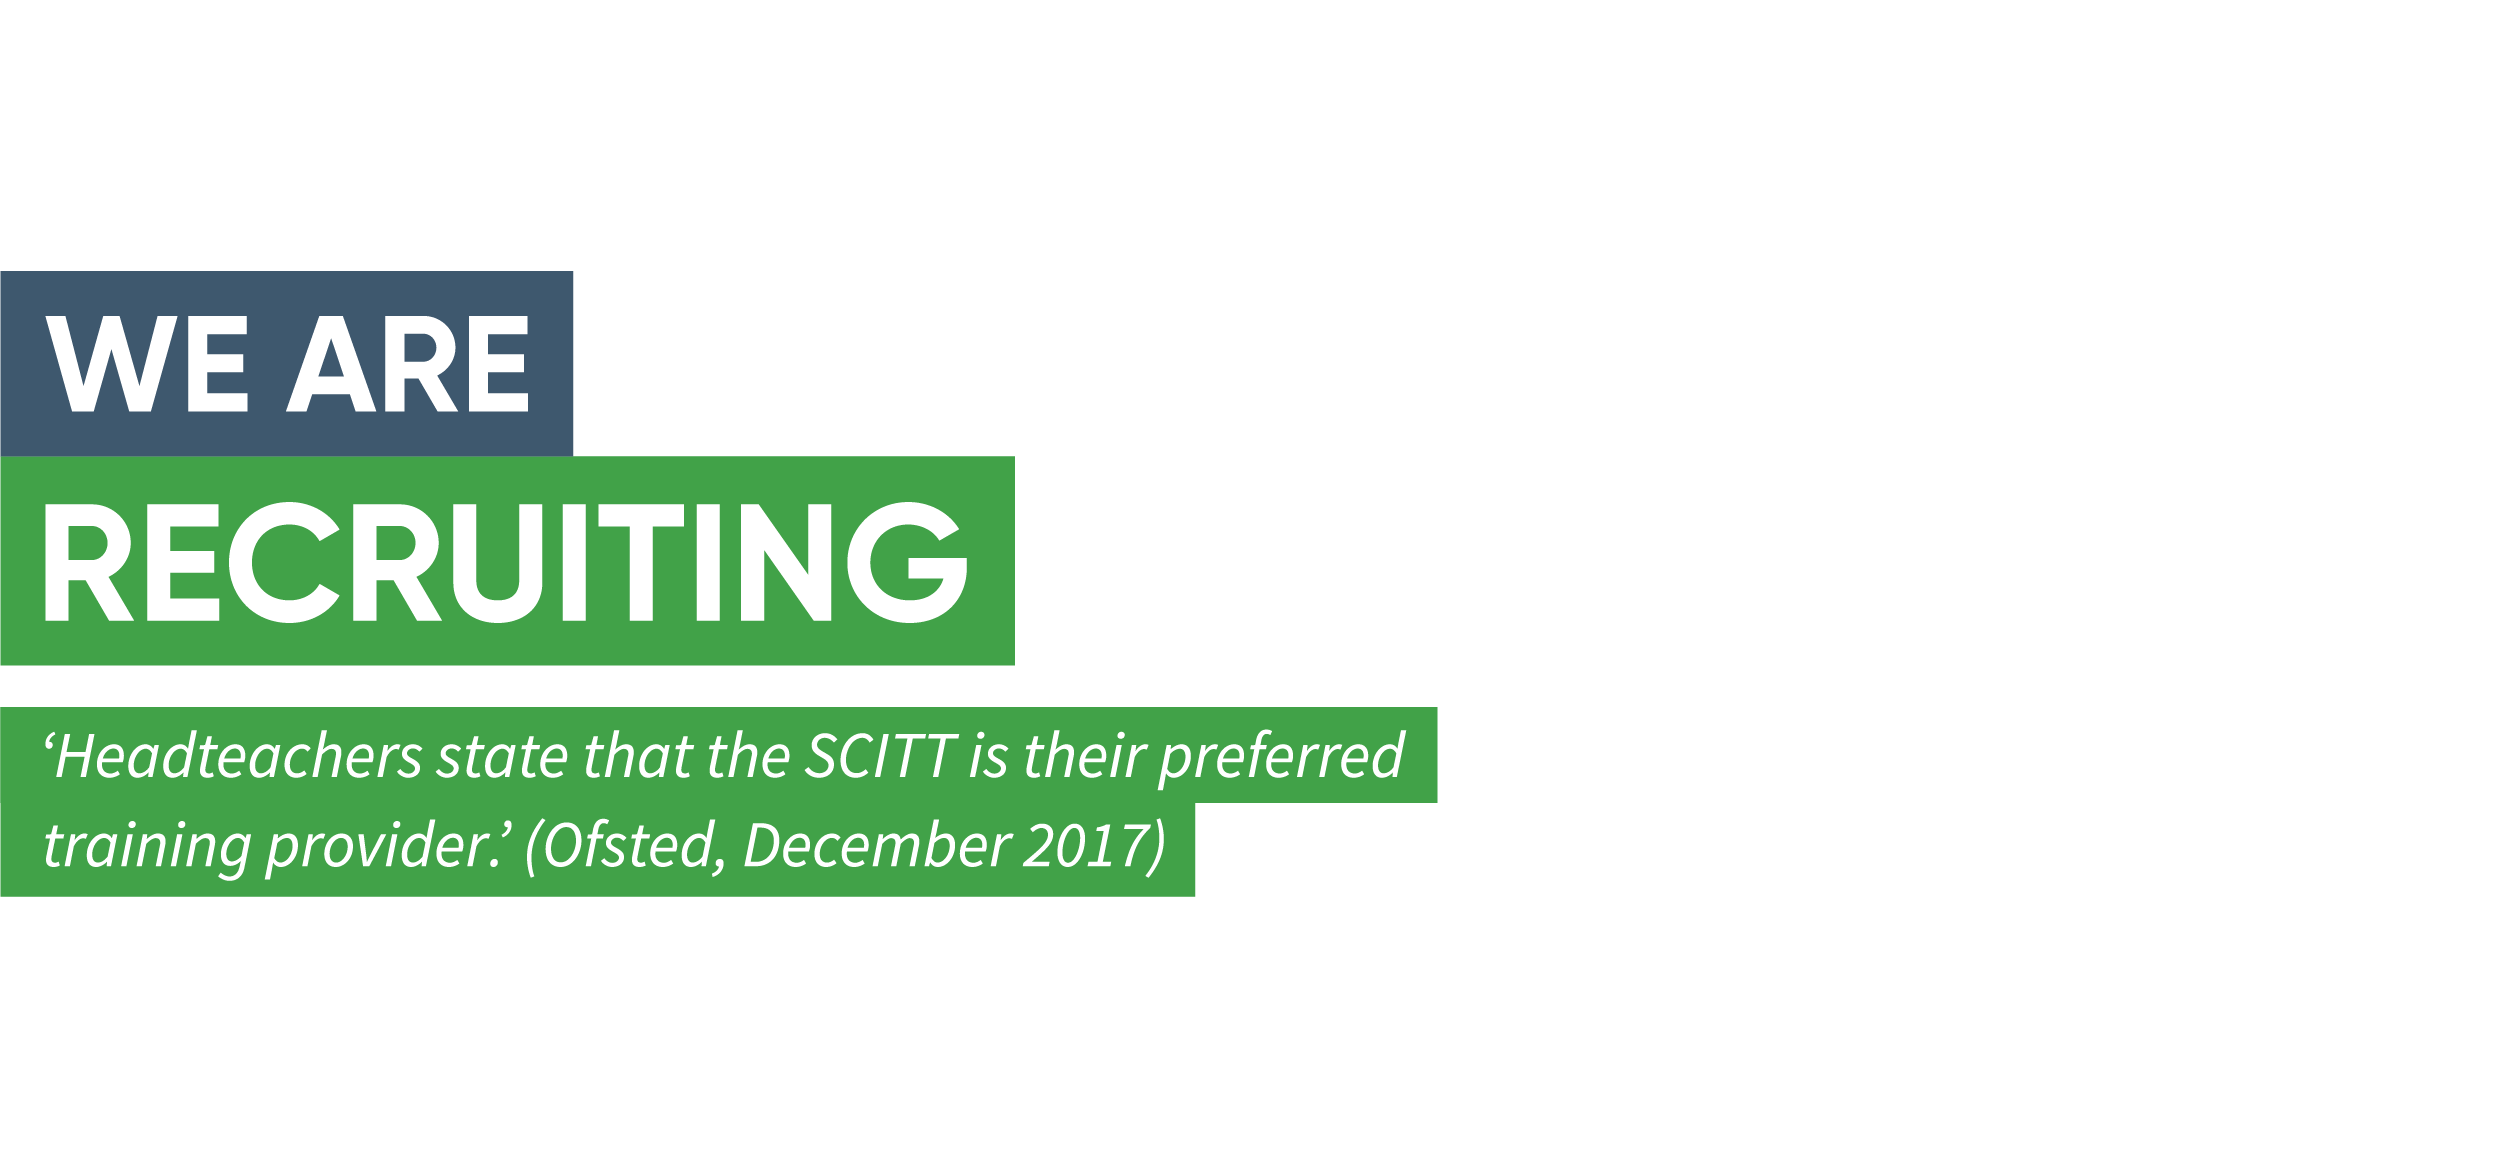 "A green banner reading, ""We are recruiting. 'Headteachers state that the SCITT is their preferred training provider.' (Ofsted, December 2017)."